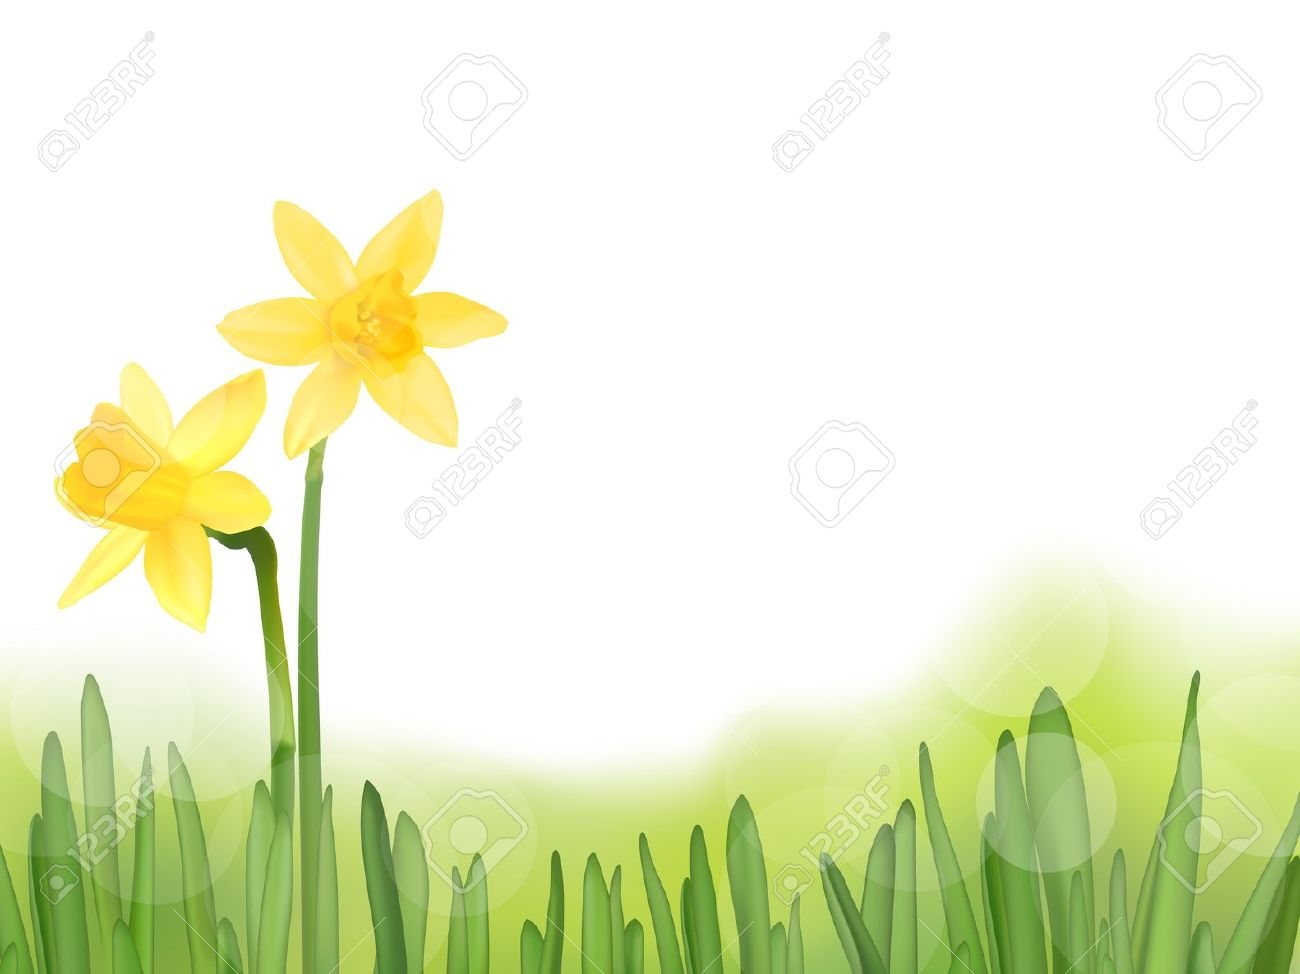 Grass With Daffodils, Vector Illustration Royalty Free Cliparts.